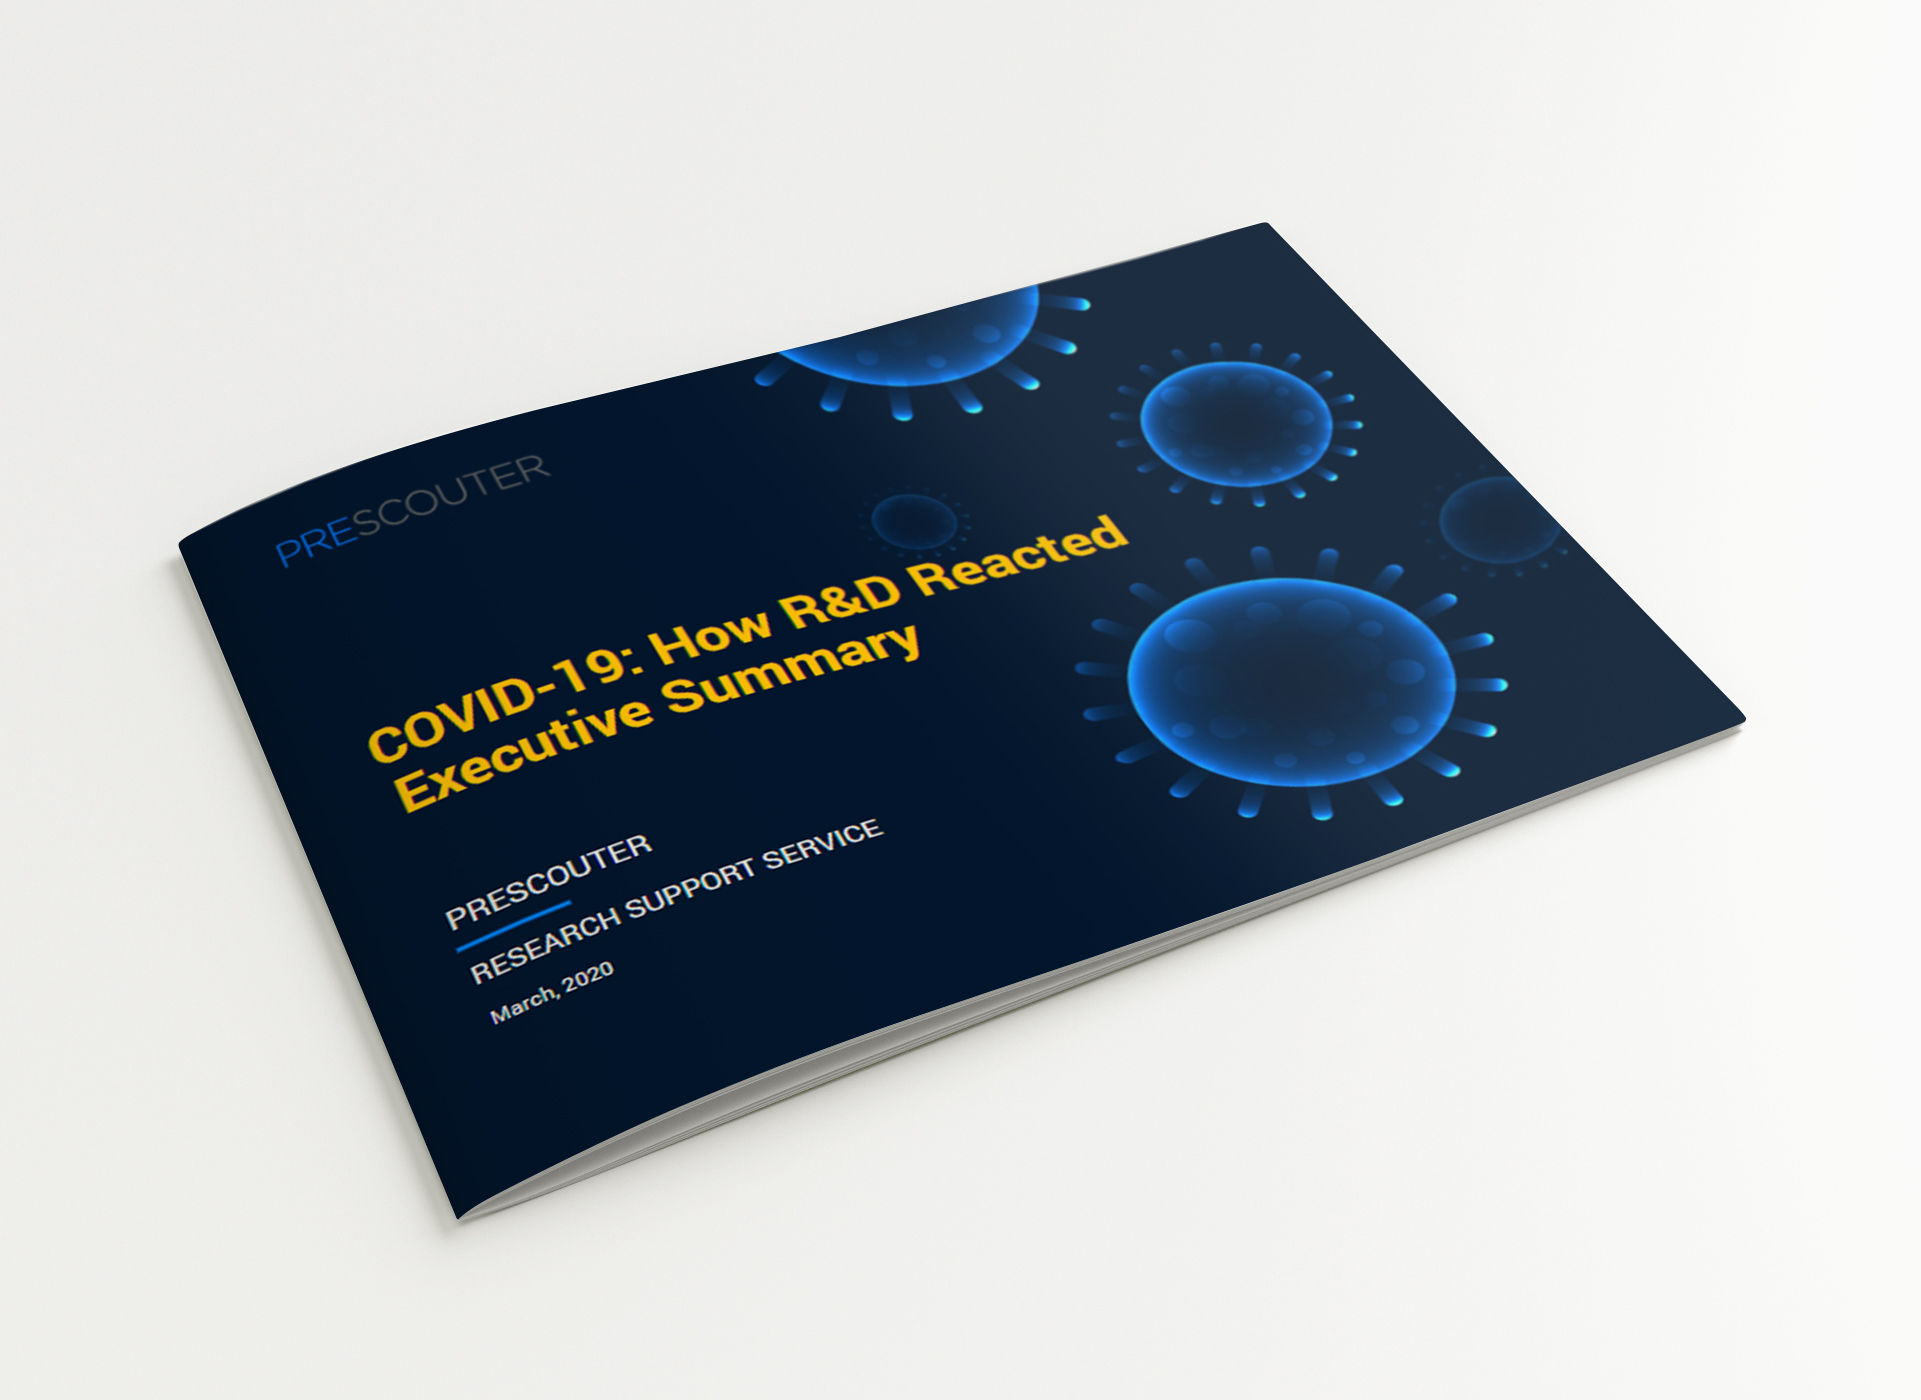 COVID-19: How the R&D Industry Responded and What We Learned